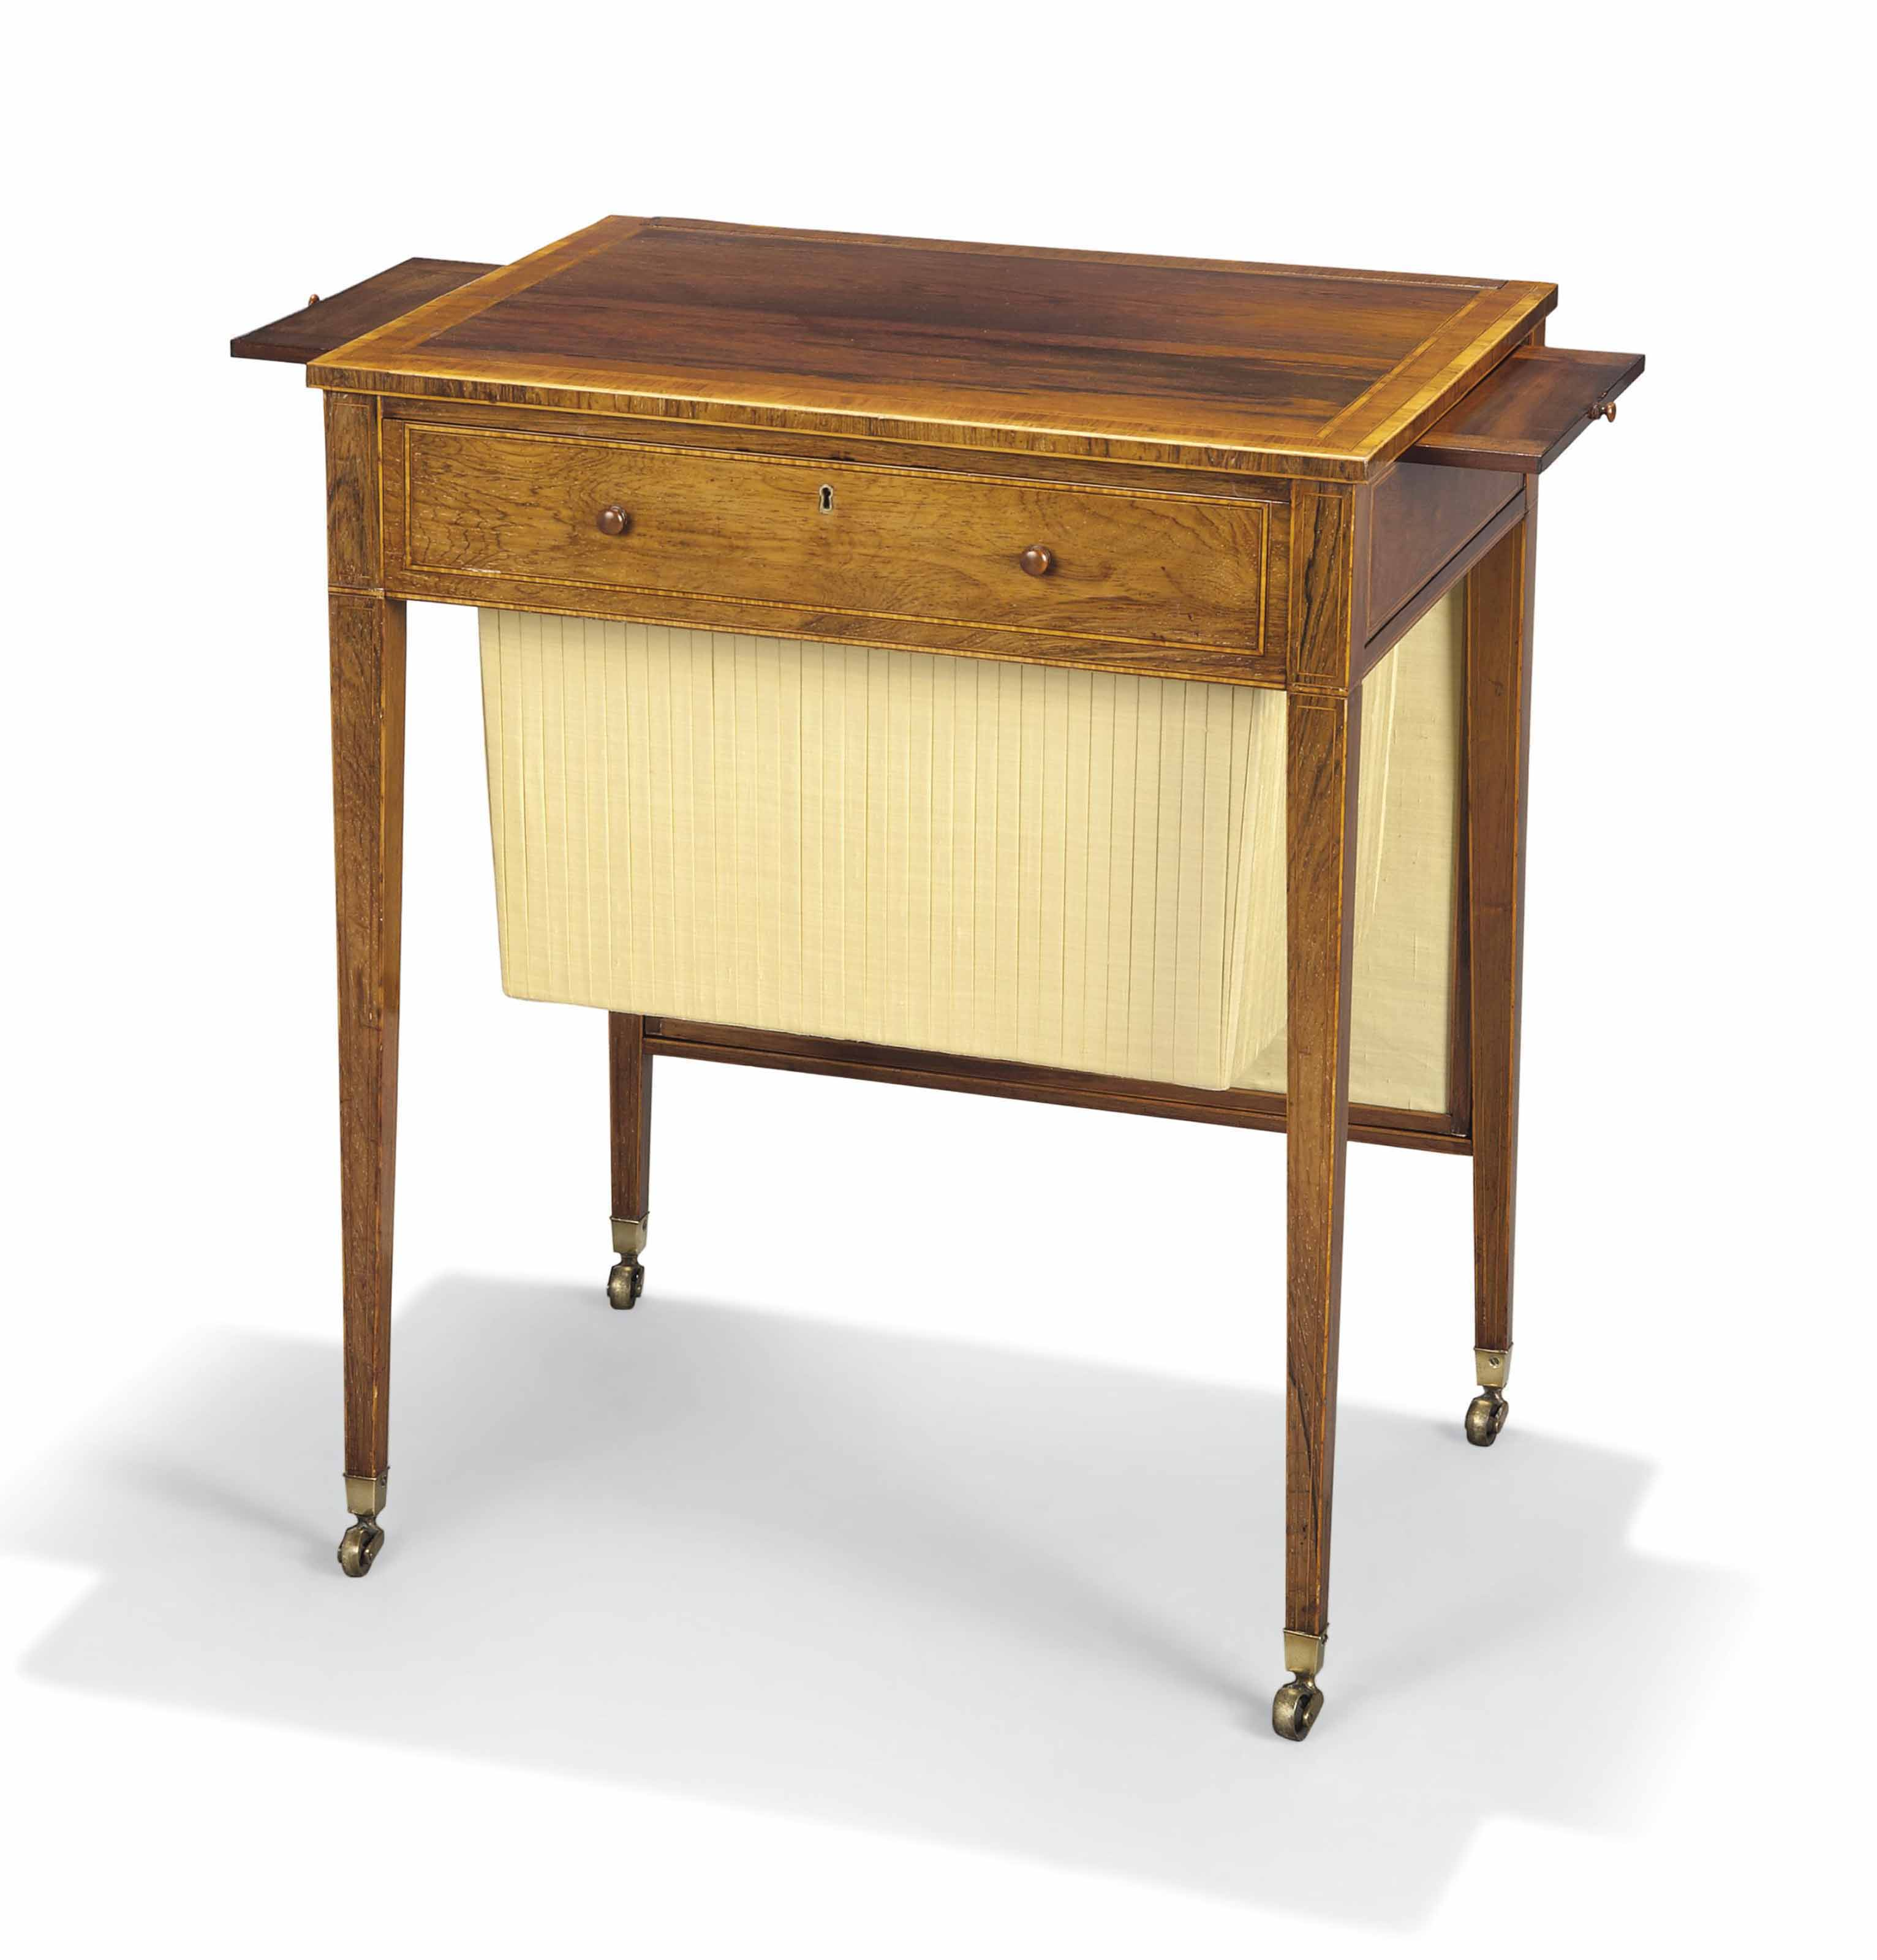 A REGENCY ROSEWOOD AND TULIPWOOD CROSS-BANDED LADY'S WRITING...